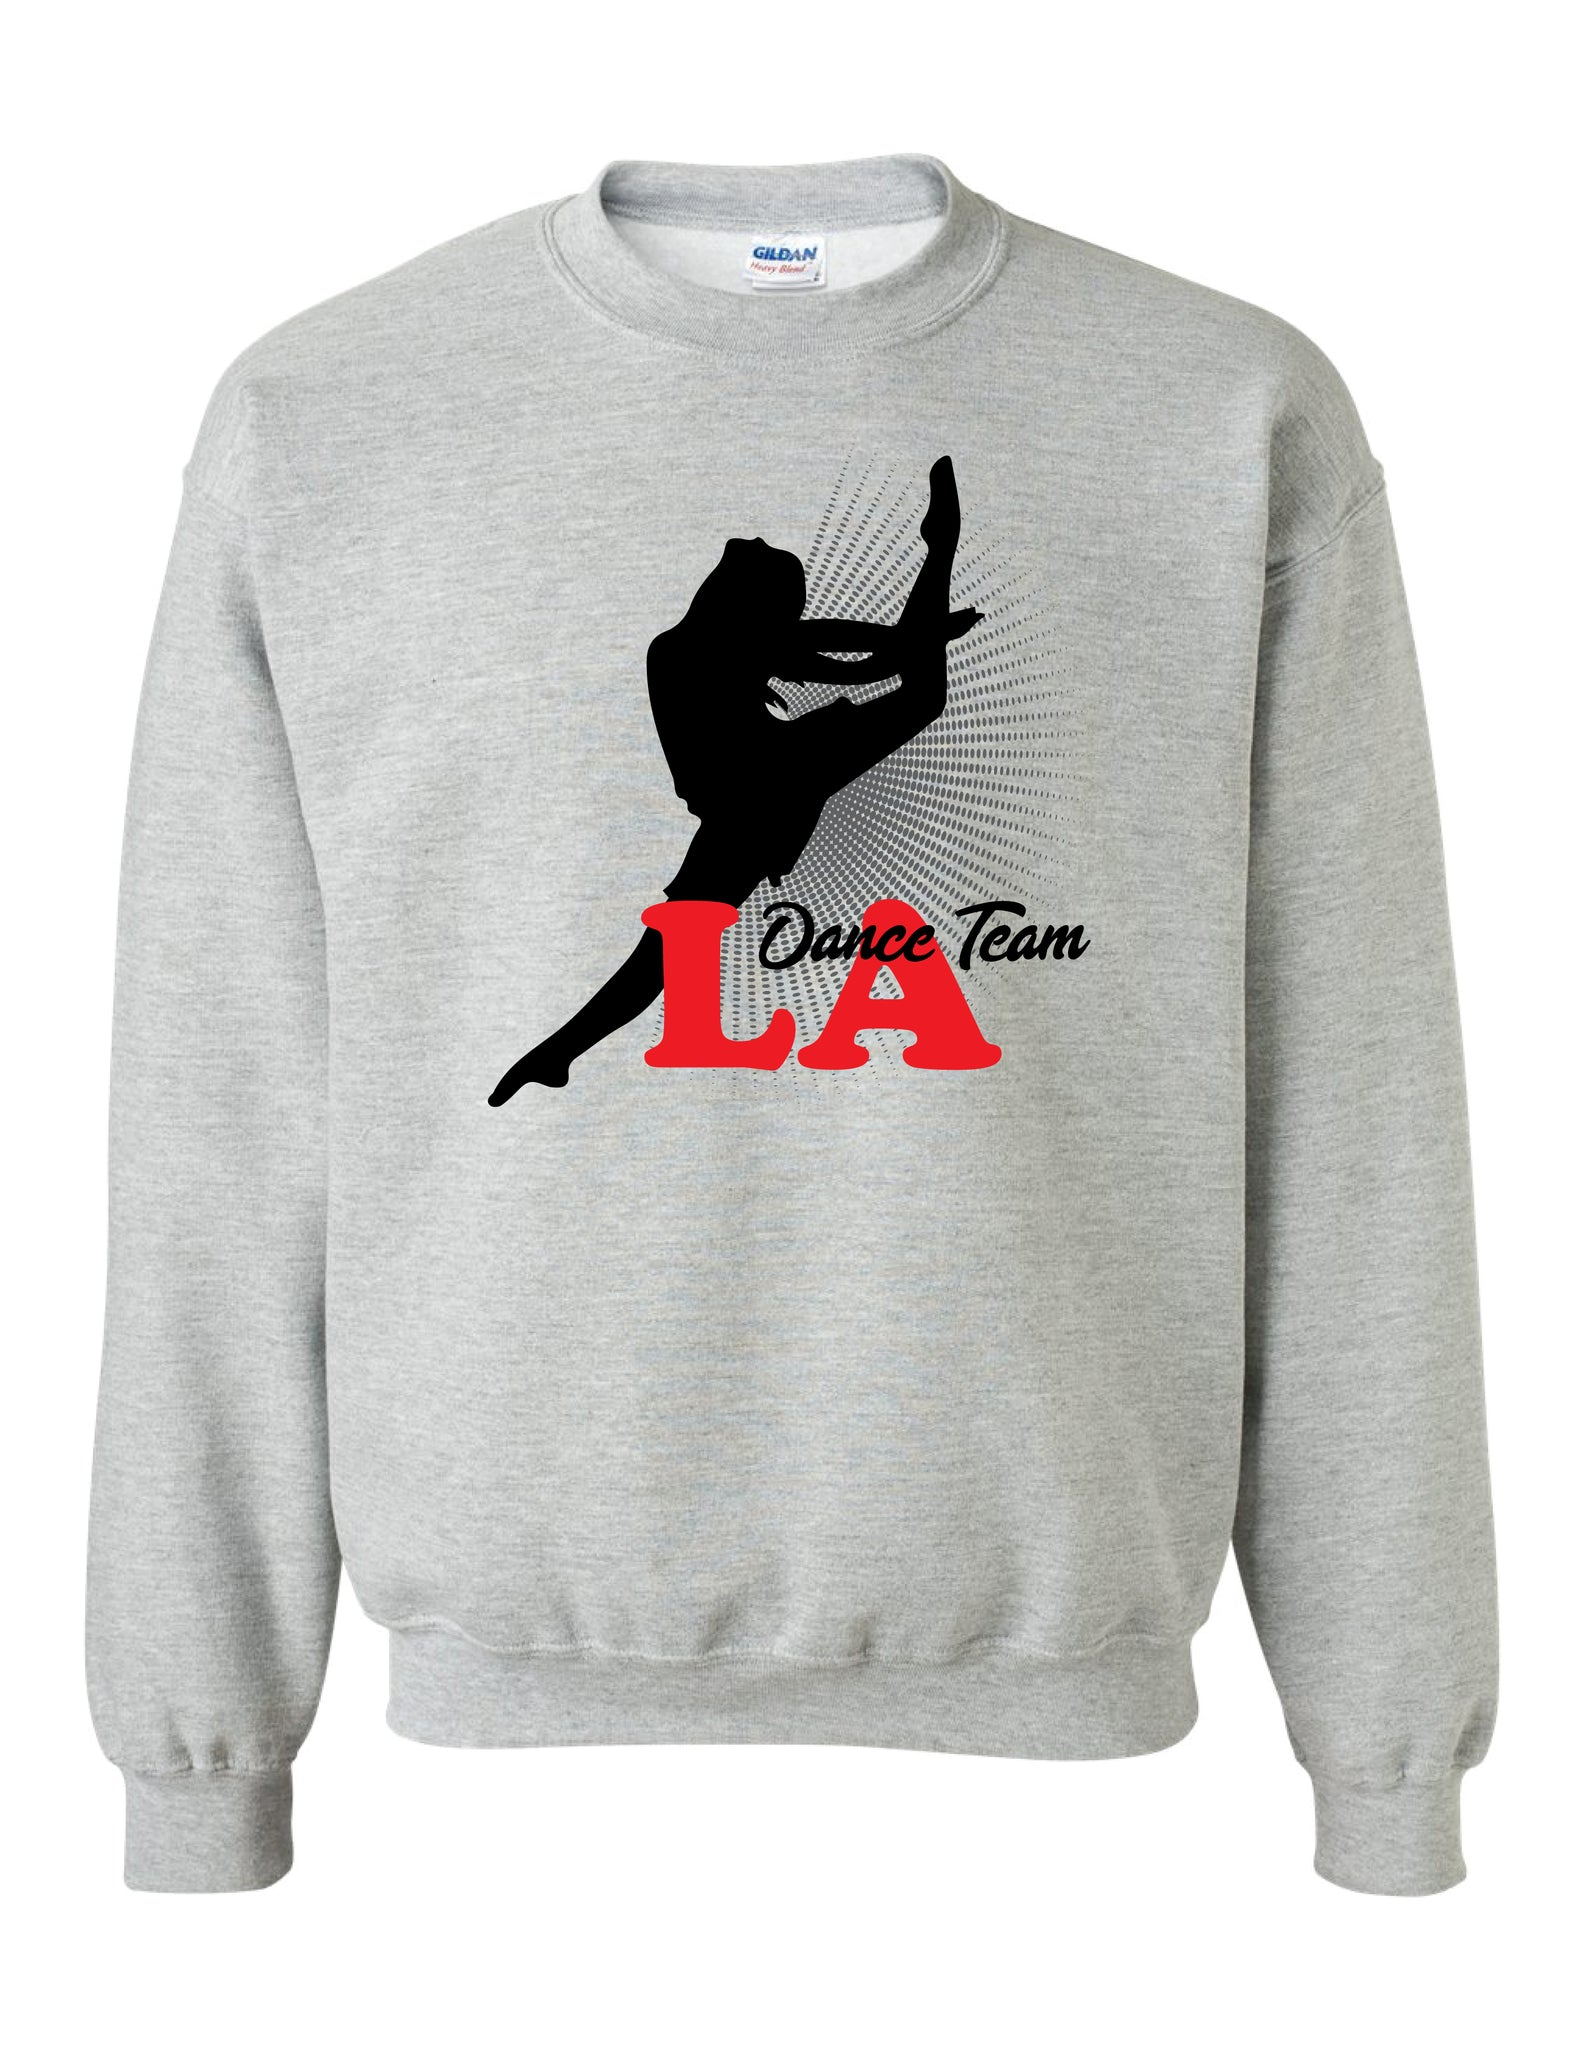 DANCER DESIGNED: LADT - Heavy Blend Crewneck Sweatshirt - 18000 - Grey